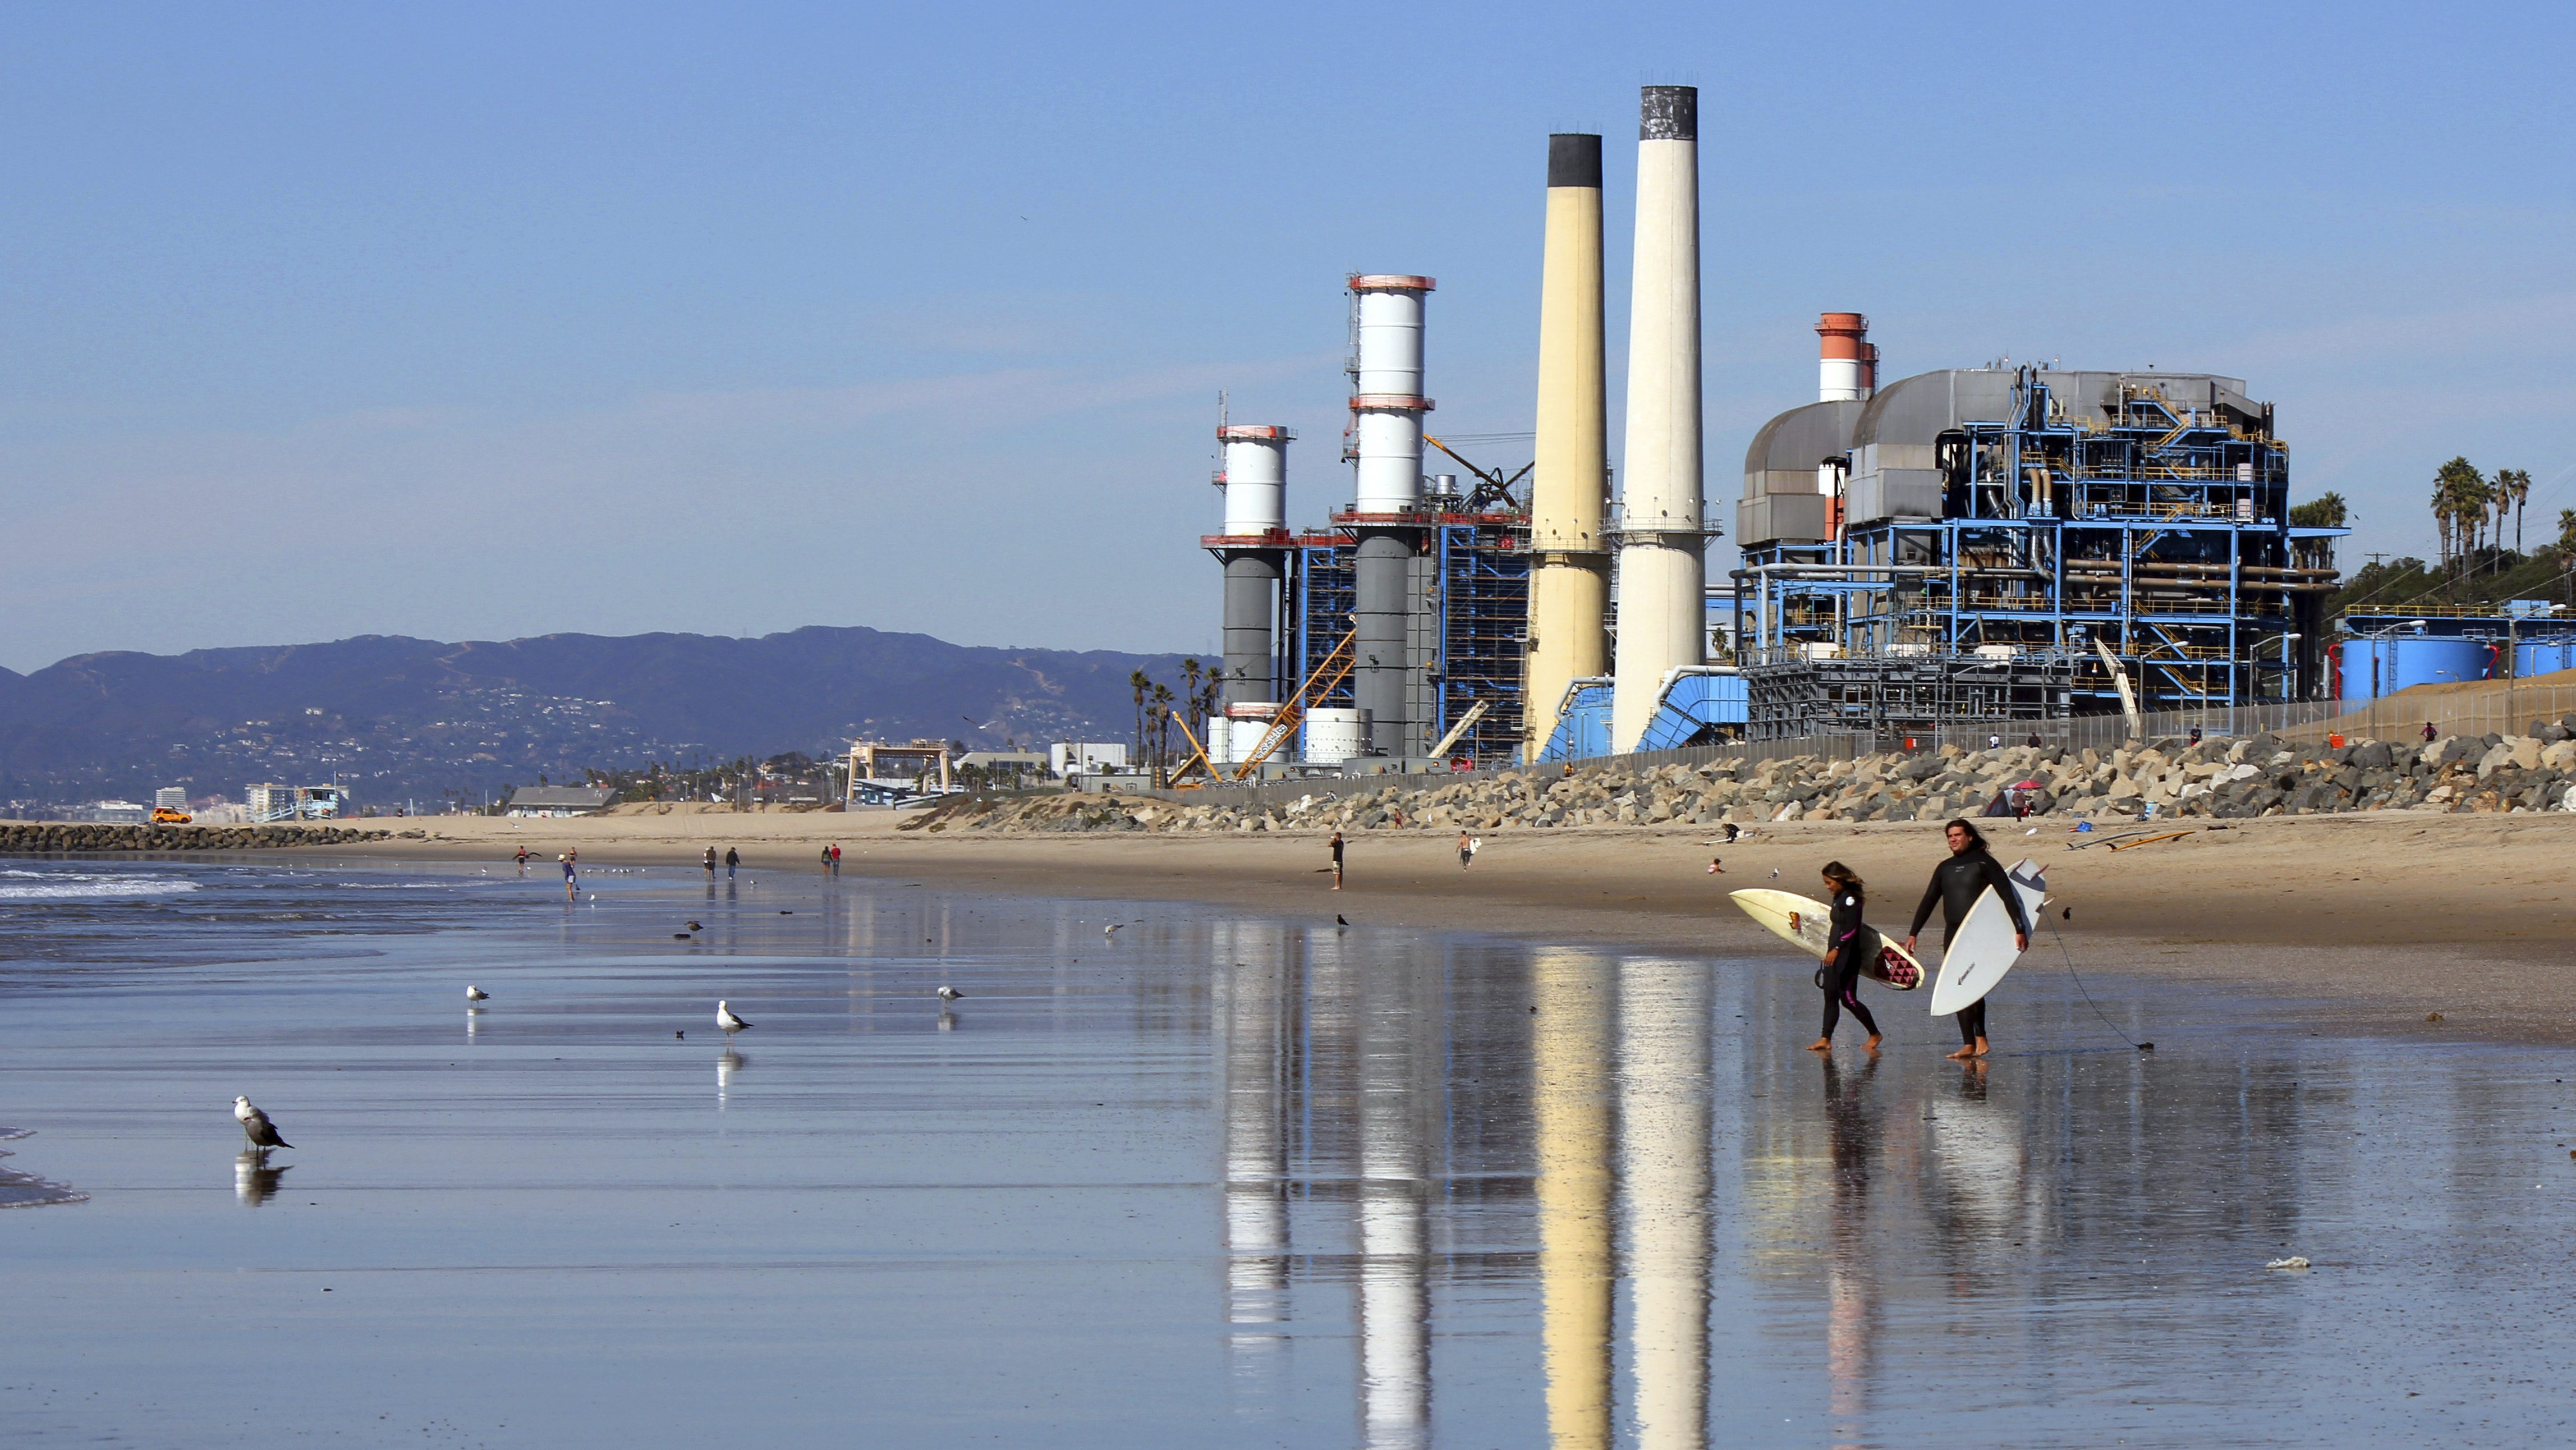 Power plant on a beach in California with surfers in the foreground